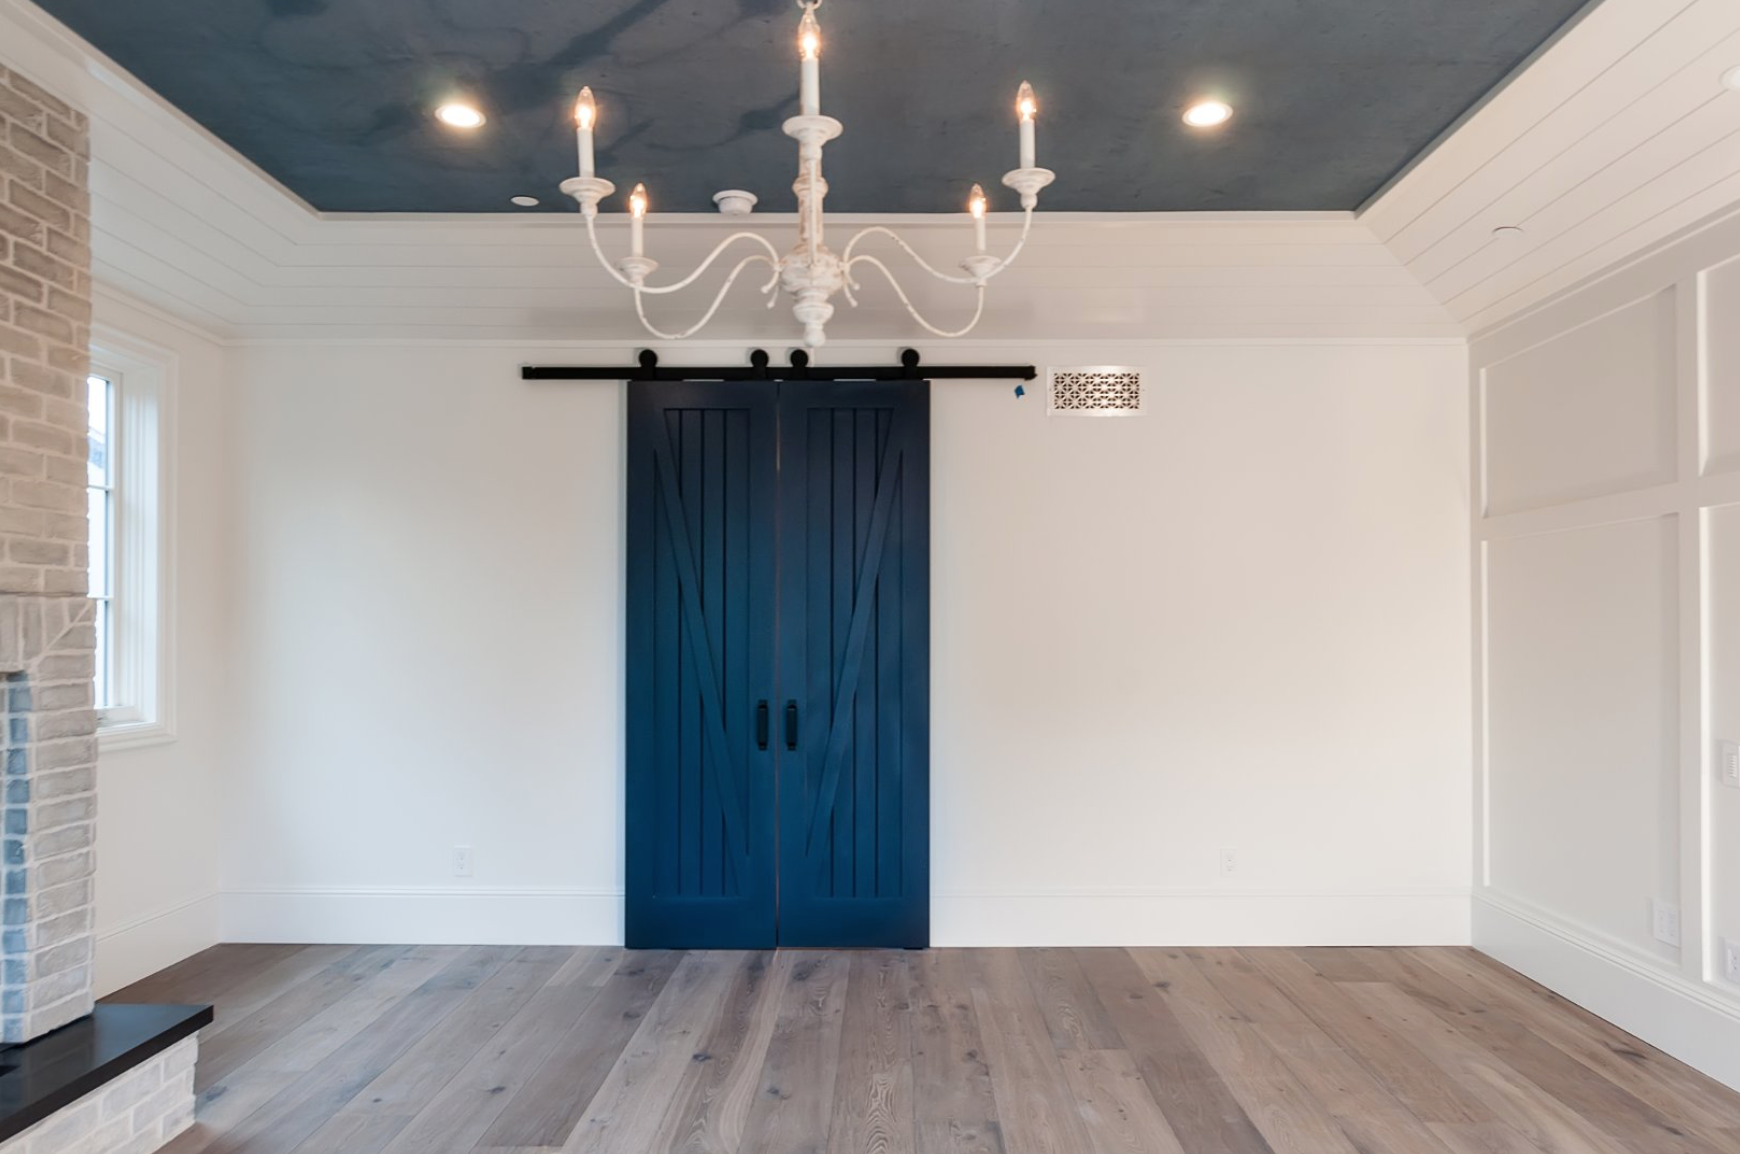 barn doors painted in modern, funky colors as both a design statement and as a way to make a room more flexible, you can section off a smaller room or keep it open.